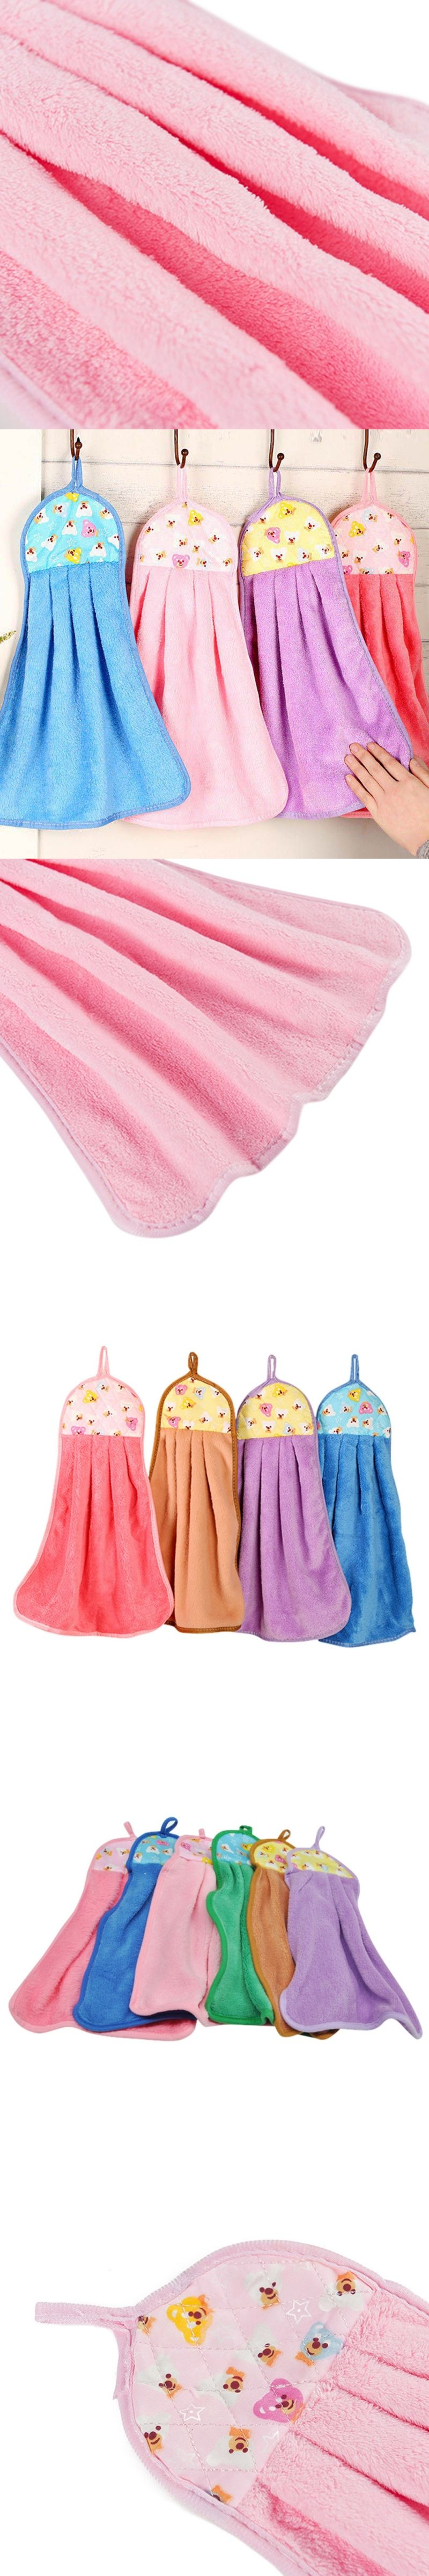 Kitchen drying hand towel hanging cleaning cloths useful strong